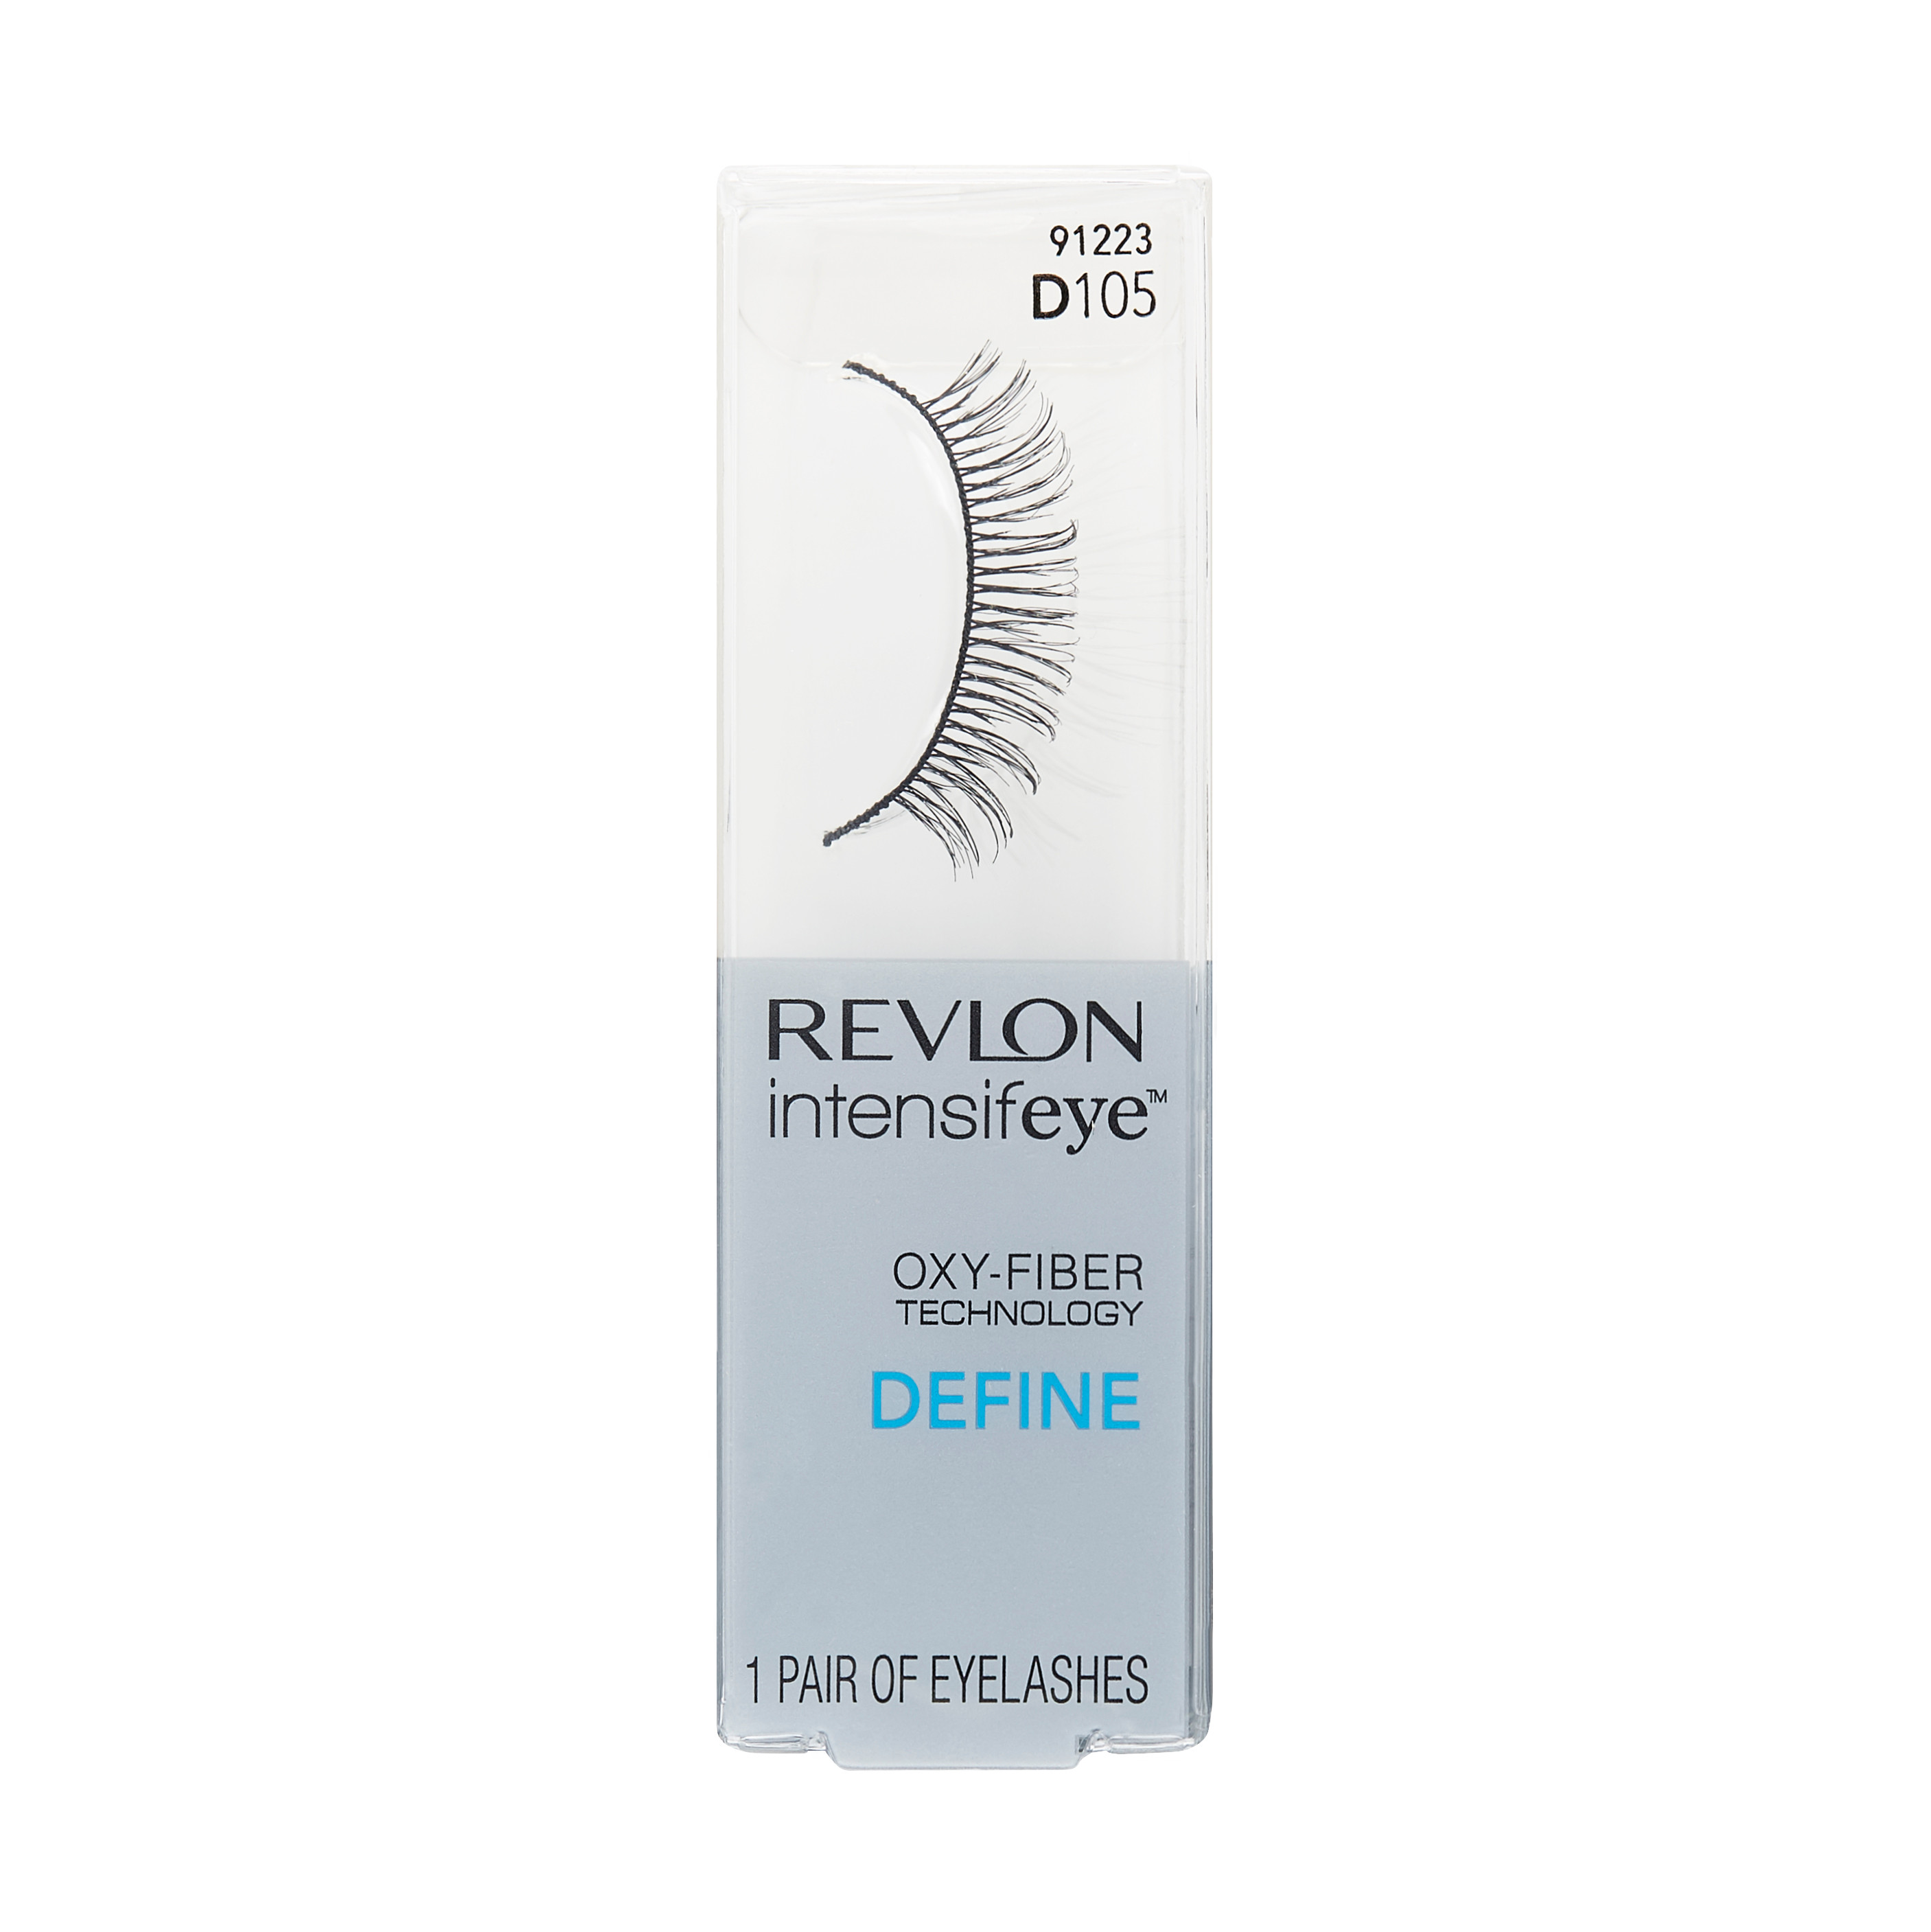 Revlon Intensifeye Define D105 Eyelashes (91223)